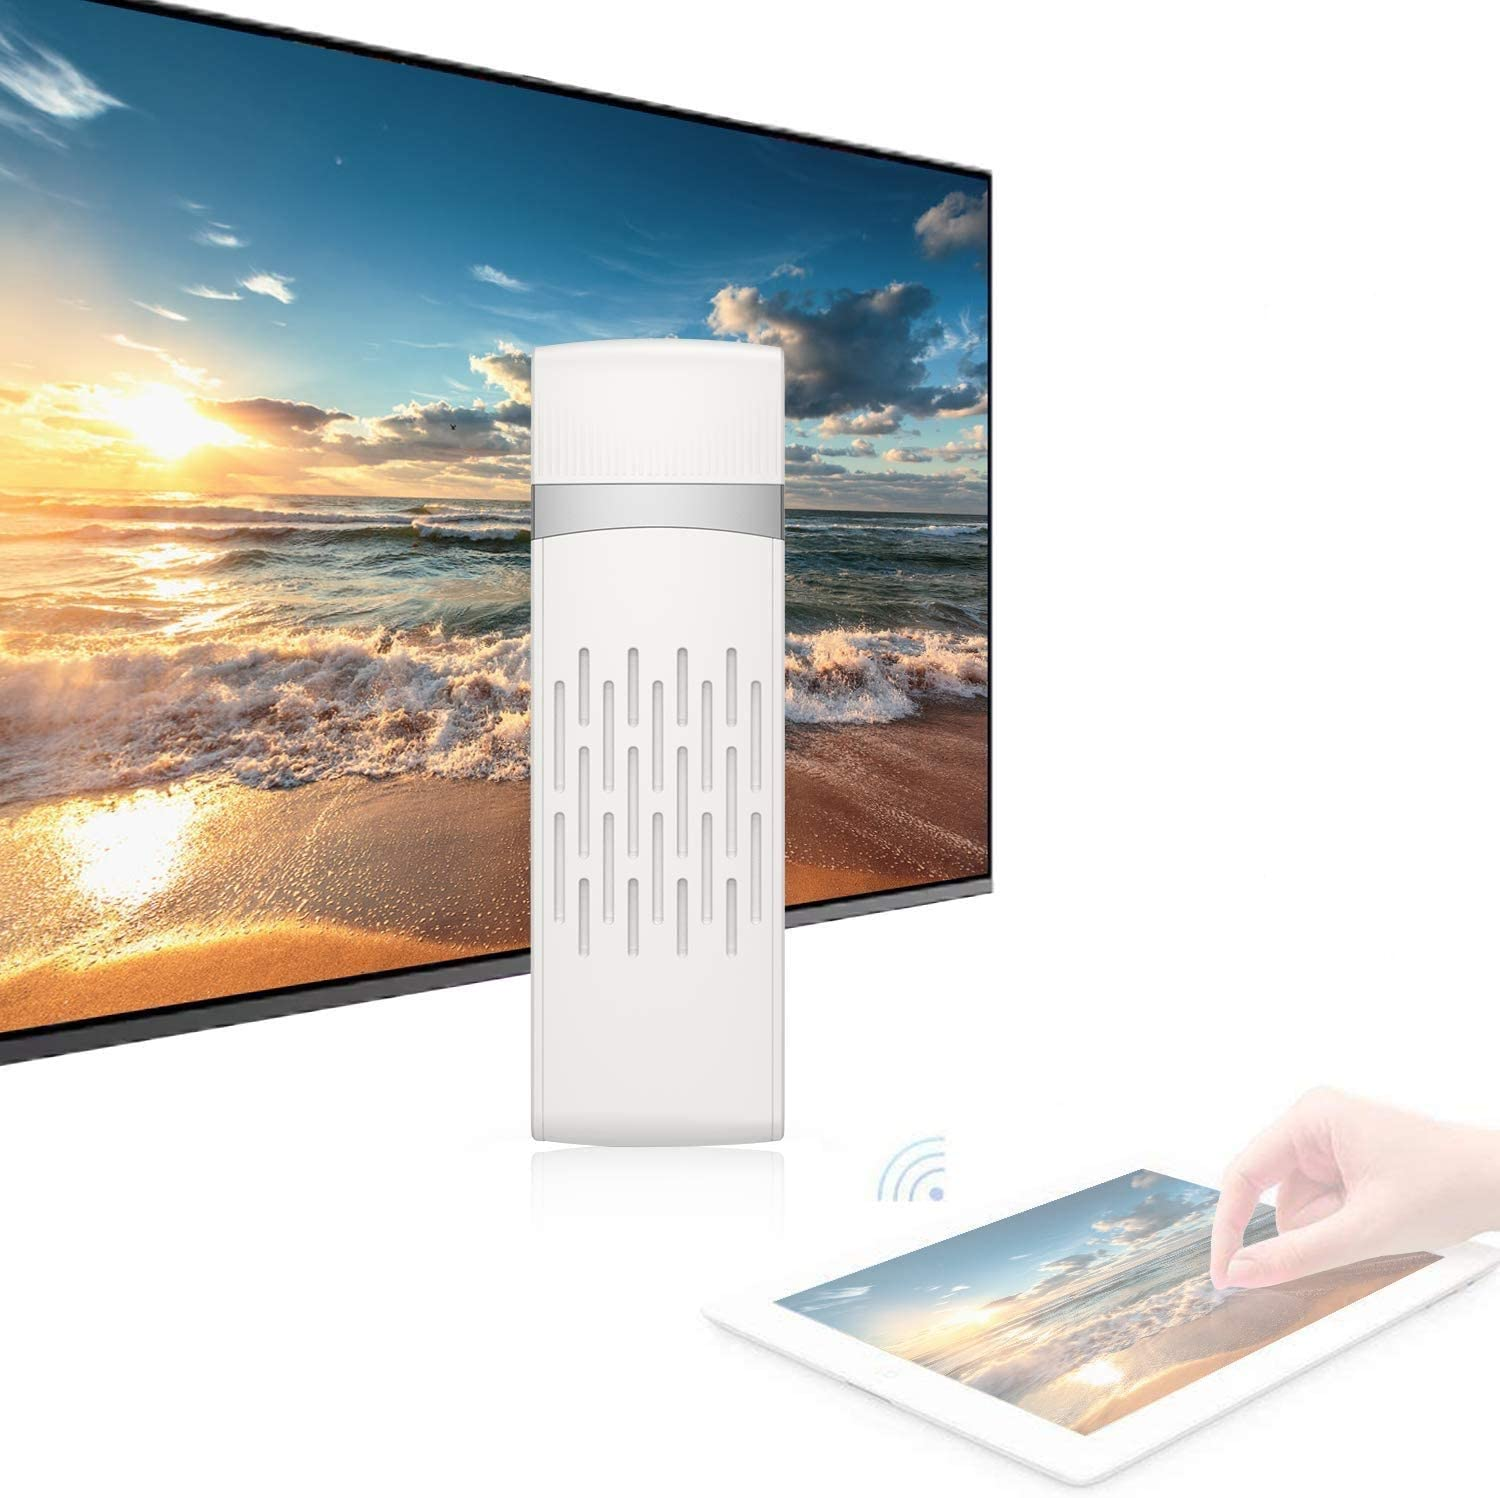 BOMAKER Wireless Display Adapter, Supports Wireless and Wired 2 in 1 Display Receiver for Projector/TV